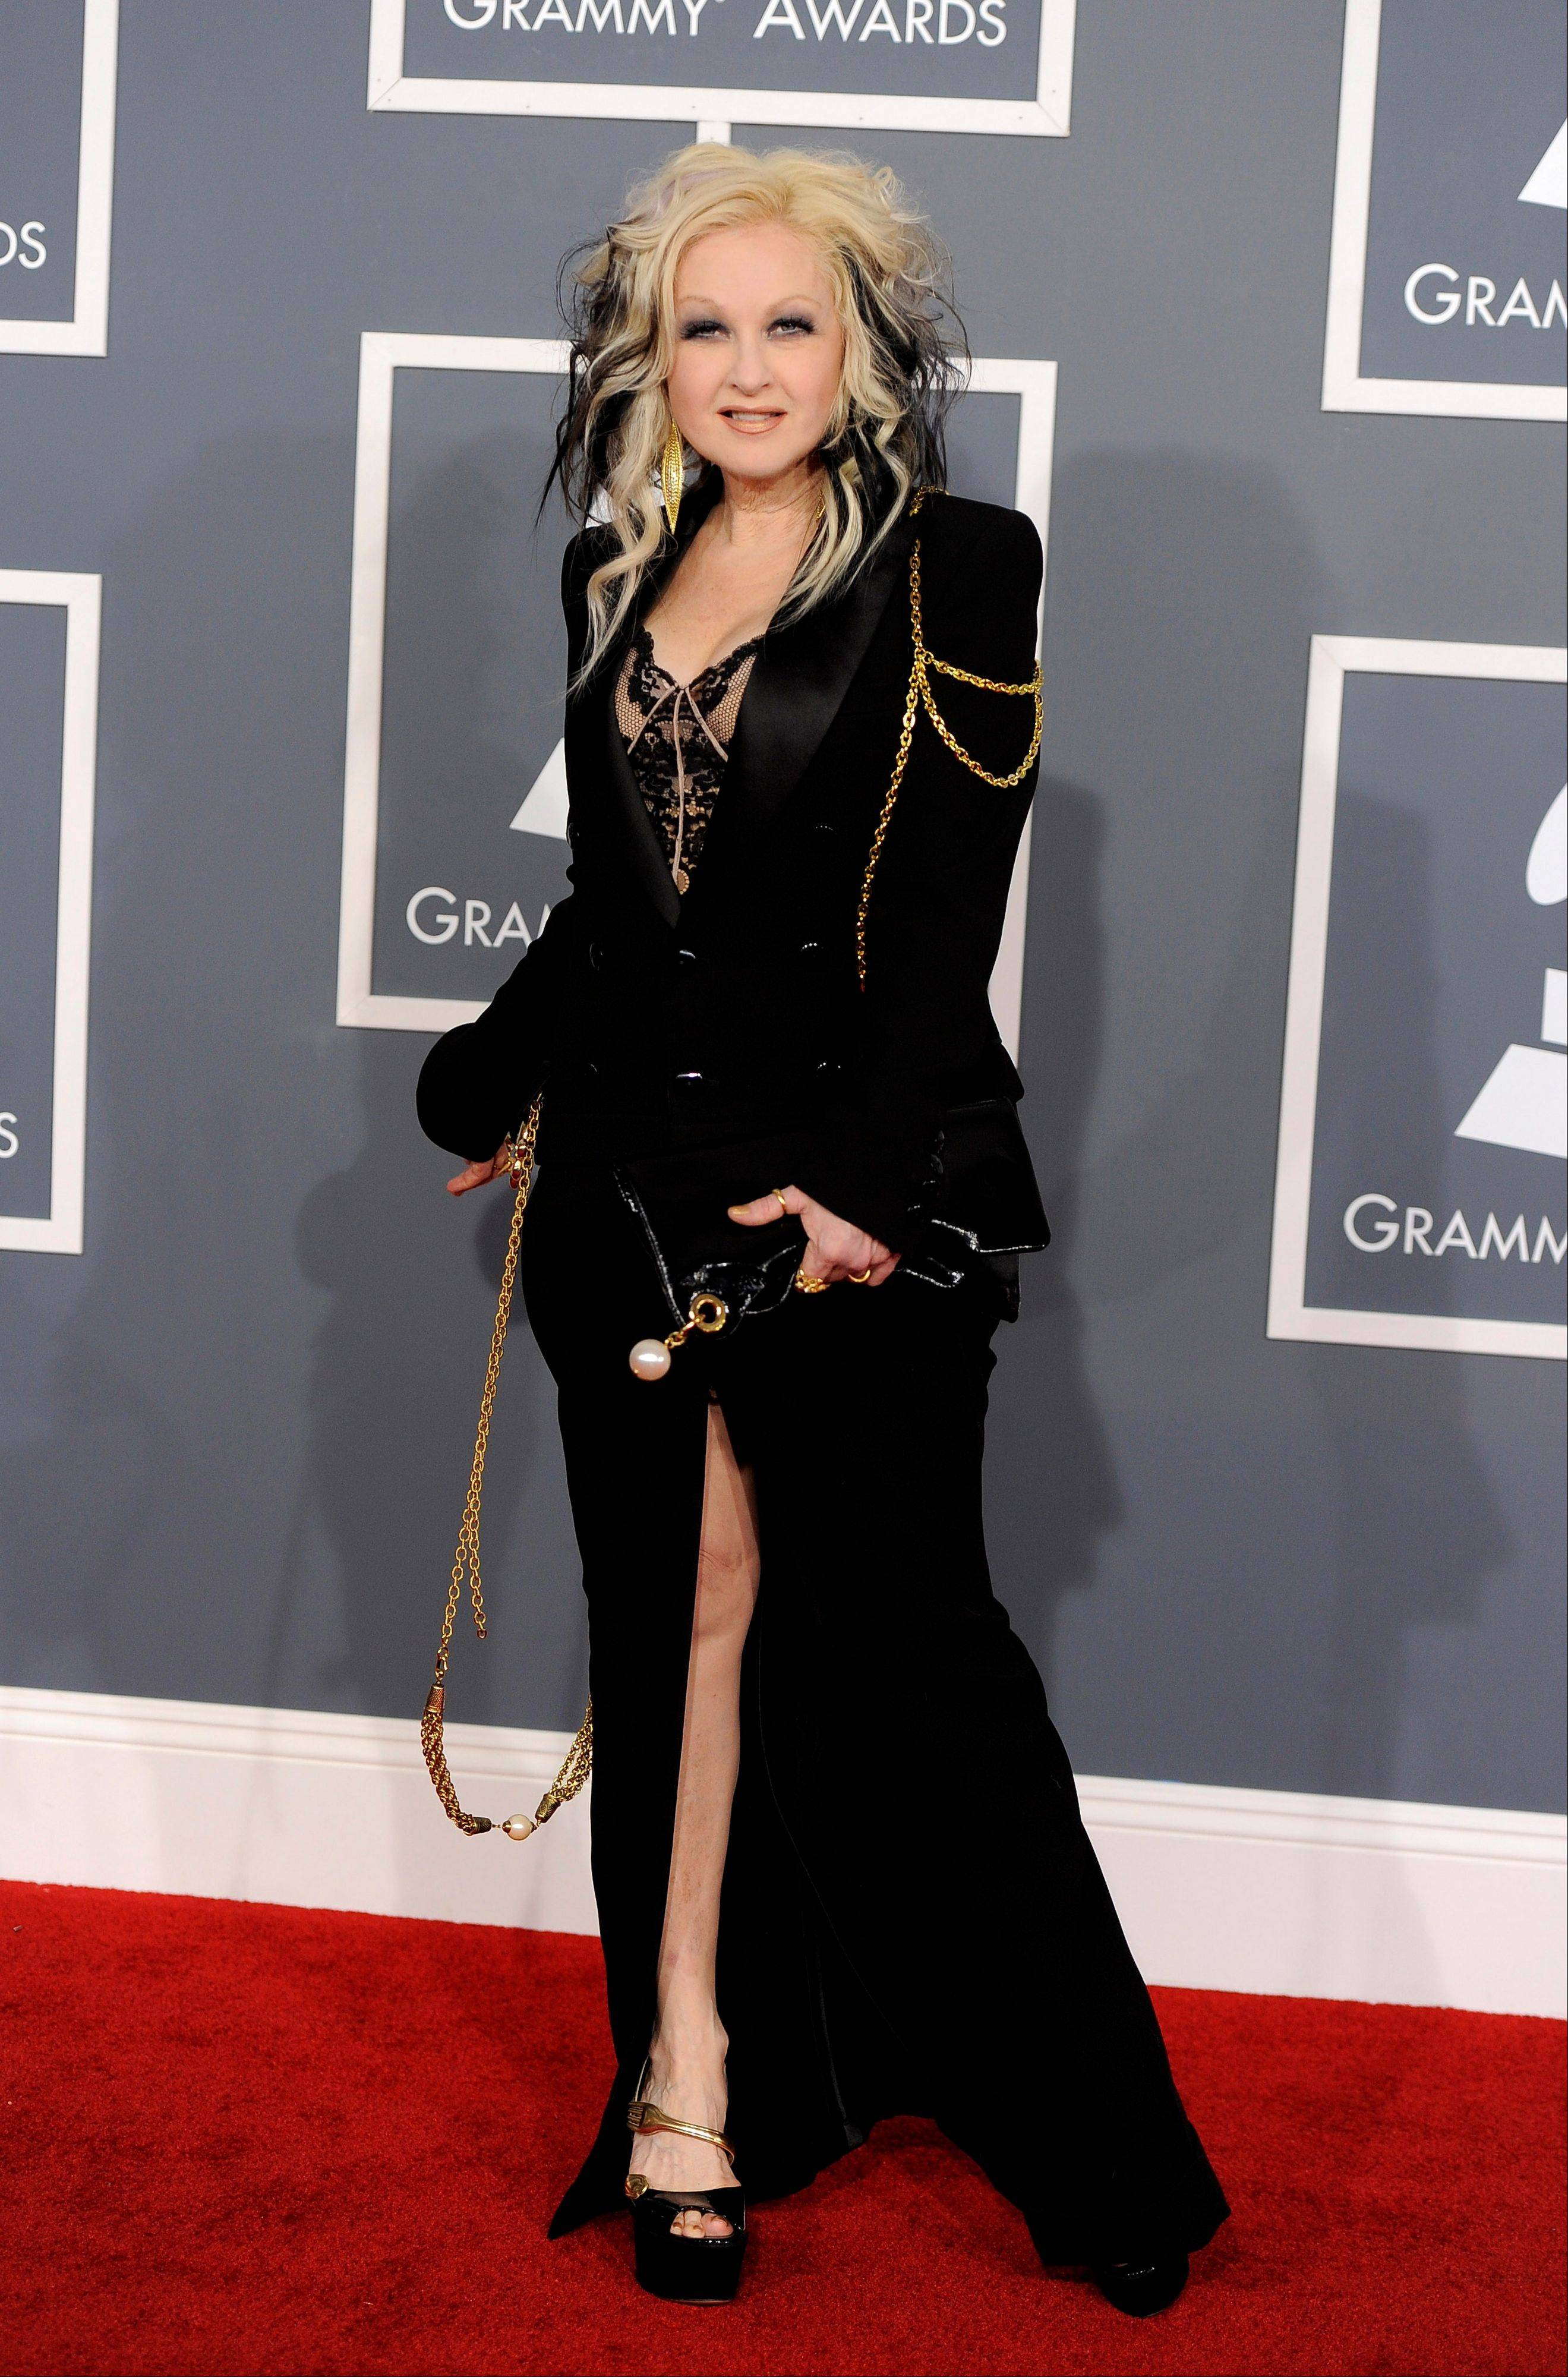 Cyndi Lauper arrives Sunday at the 54th annual Grammy Awards in Los Angeles.